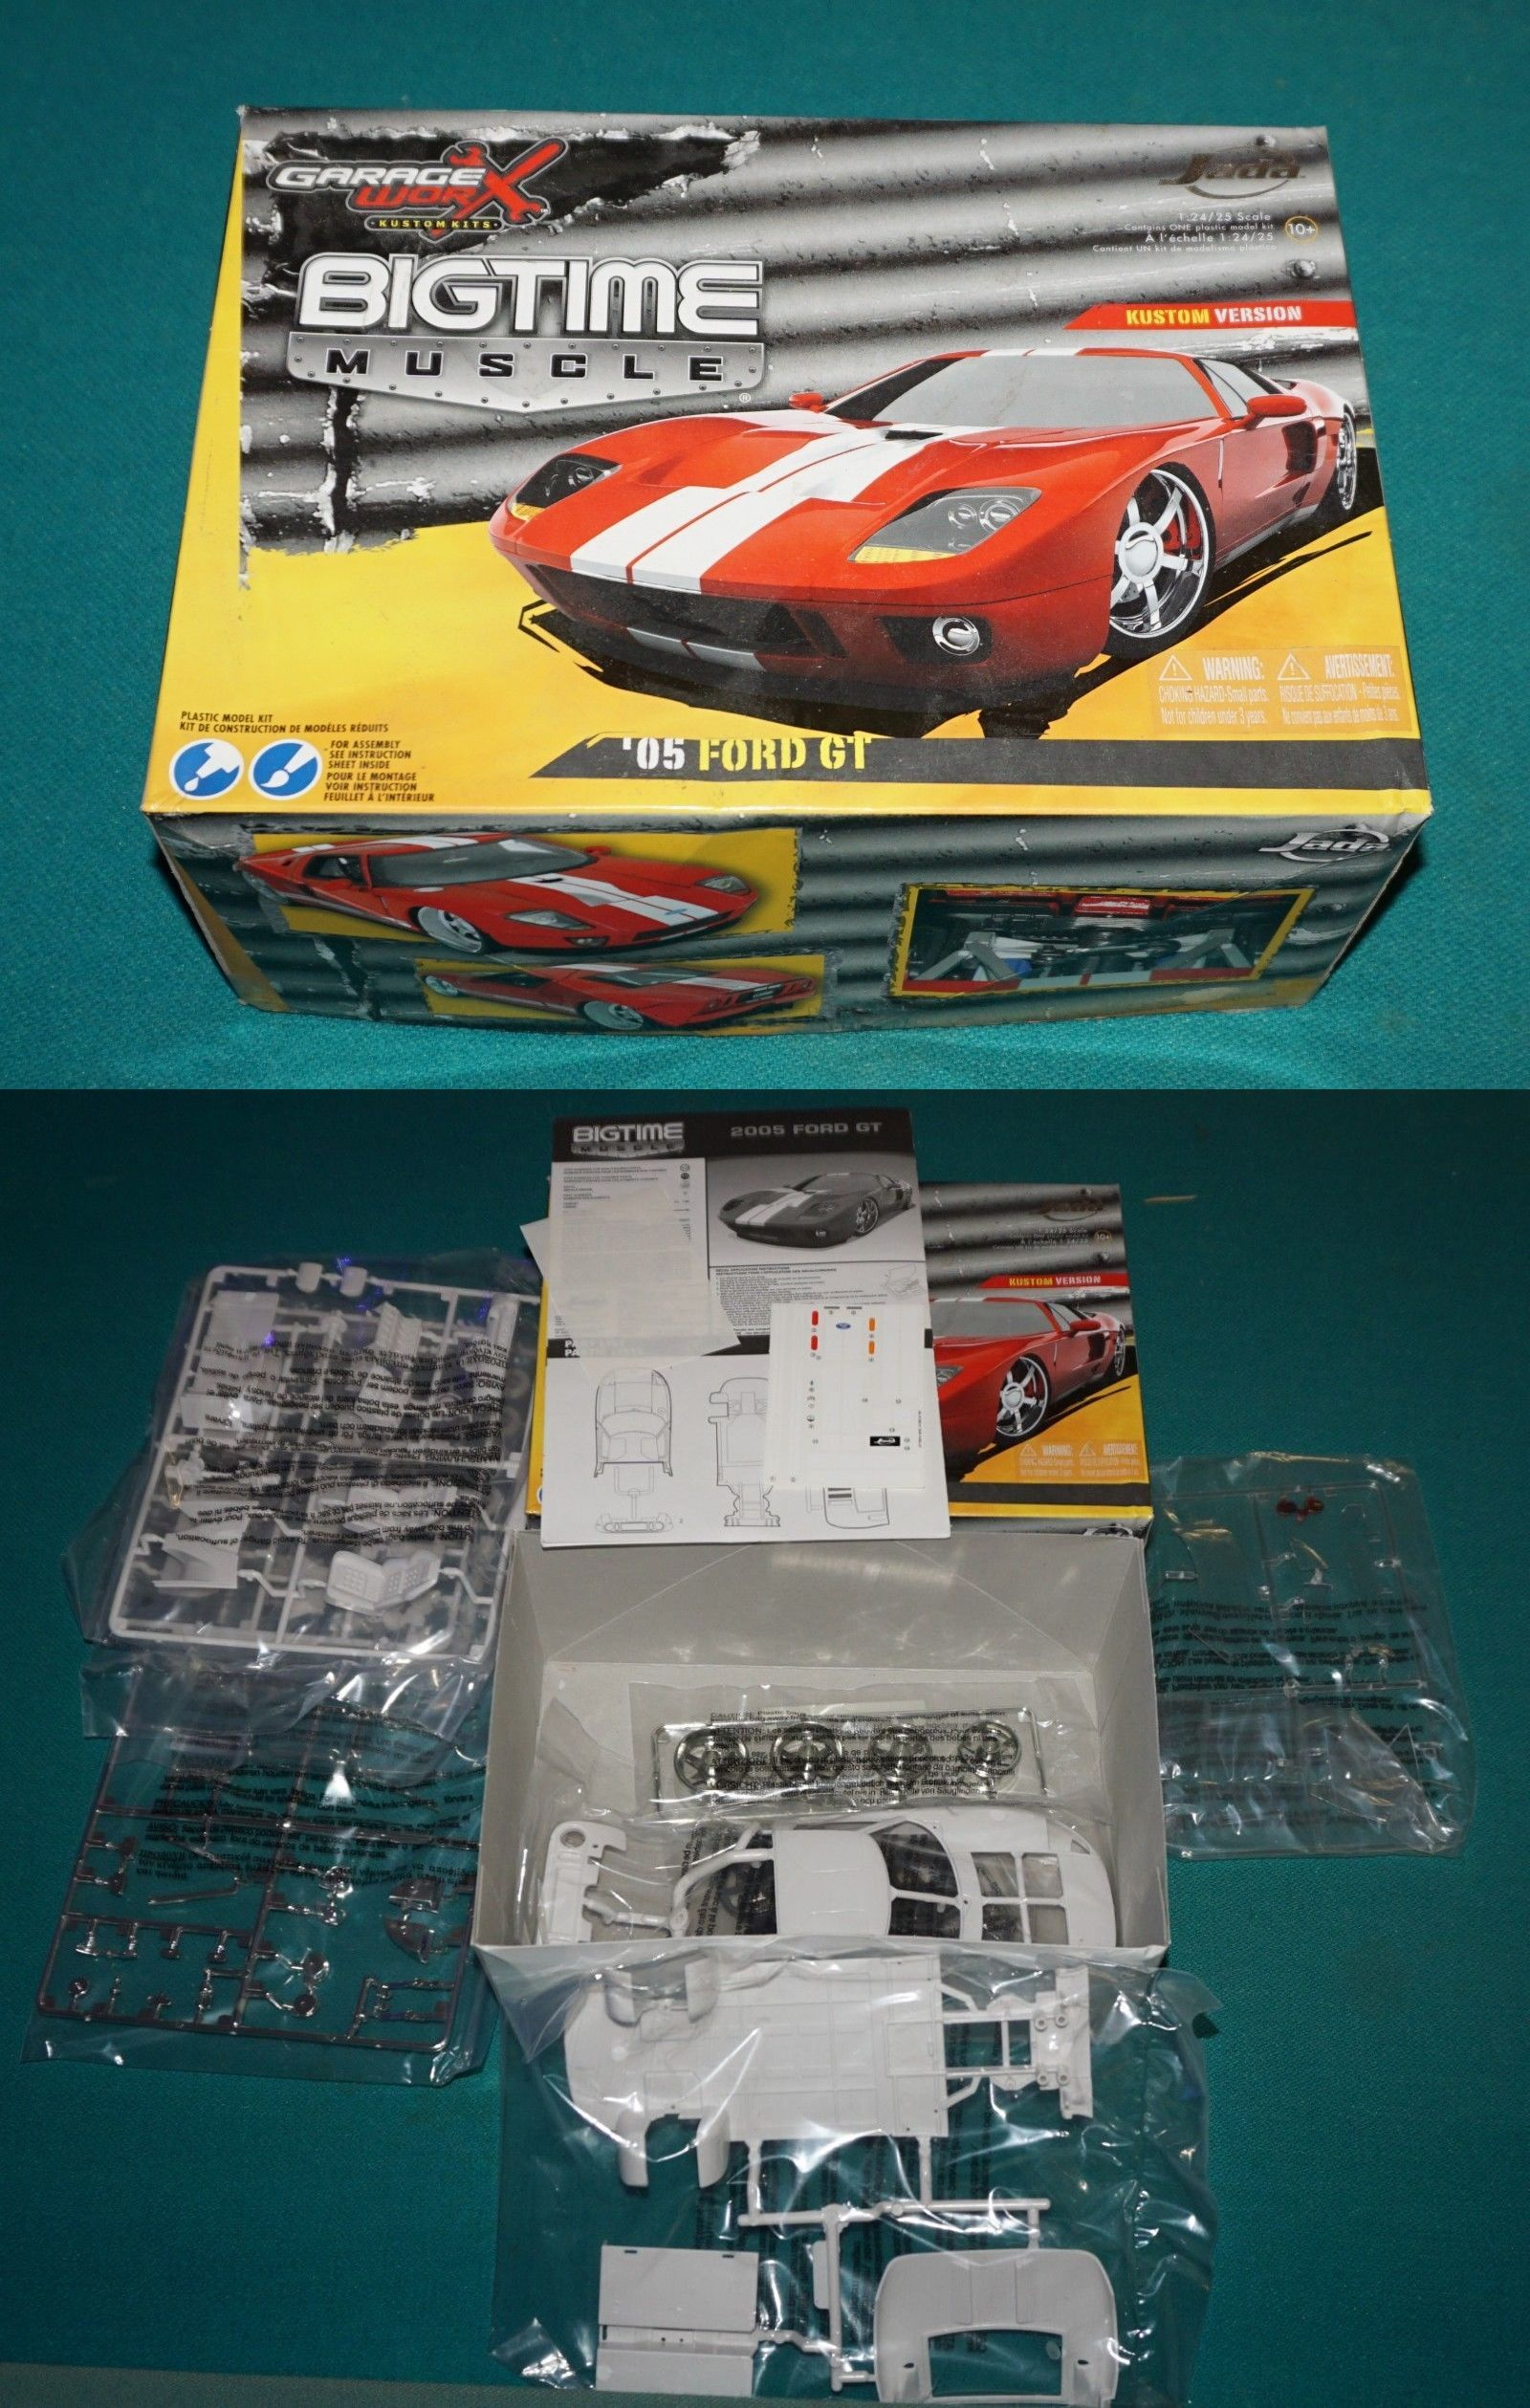 1 25 Scale 145975 2005 Ford Gt Jada Garage Worx 1 24 25 Complete And Unstarted Buy It Now Only 19 99 On Ebay Scale Garage Com Ford Gt Ford Model Kit